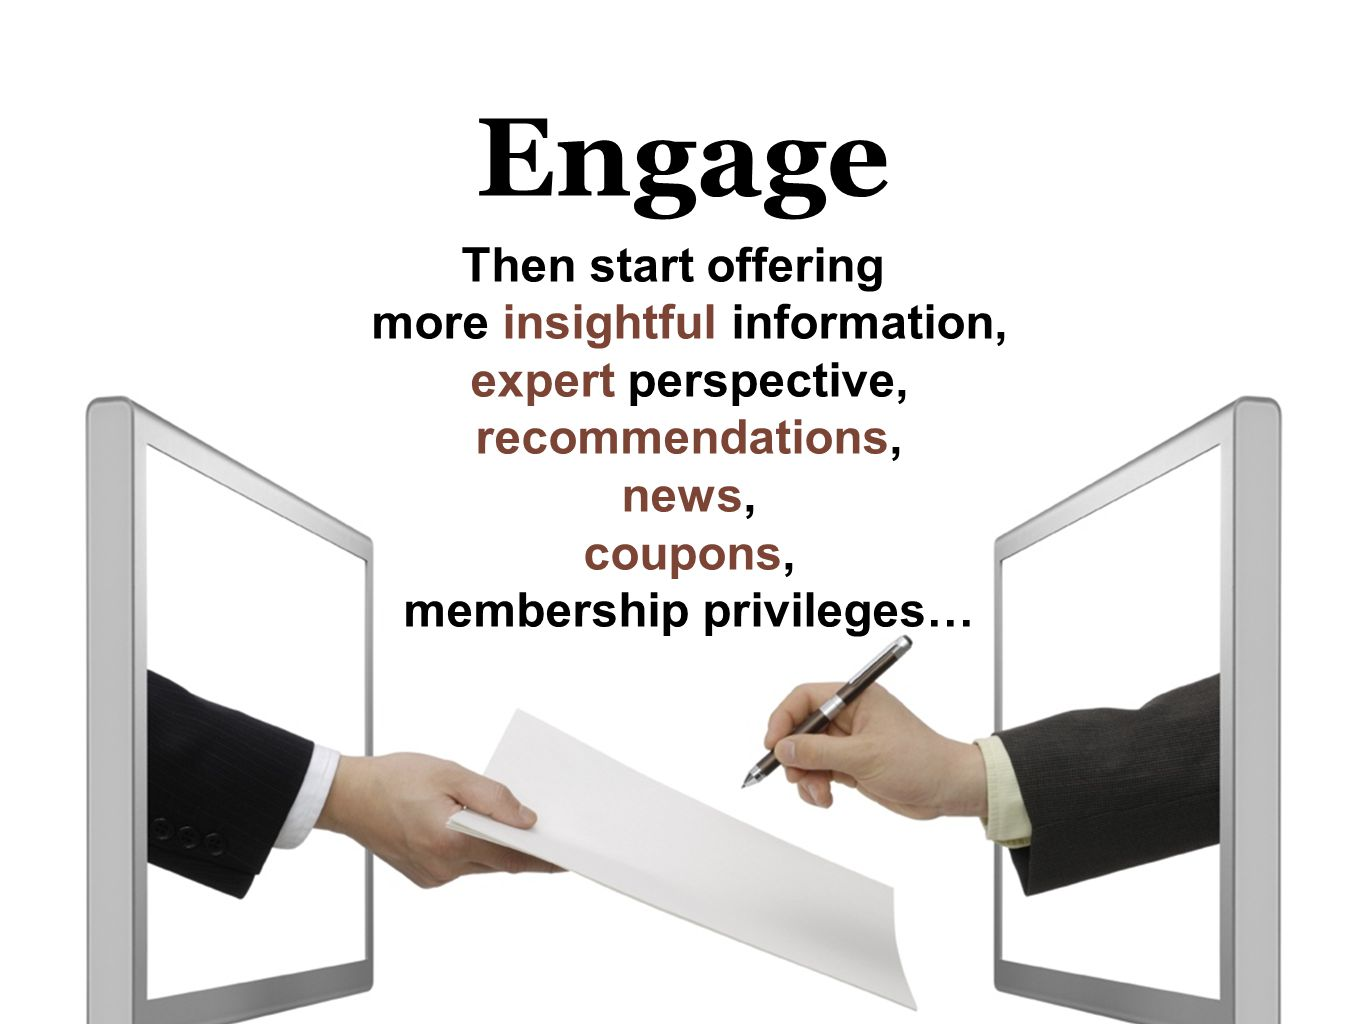 Engage Then start offering more insightful information, expert perspective, recommendations, news, coupons, membership privileges…